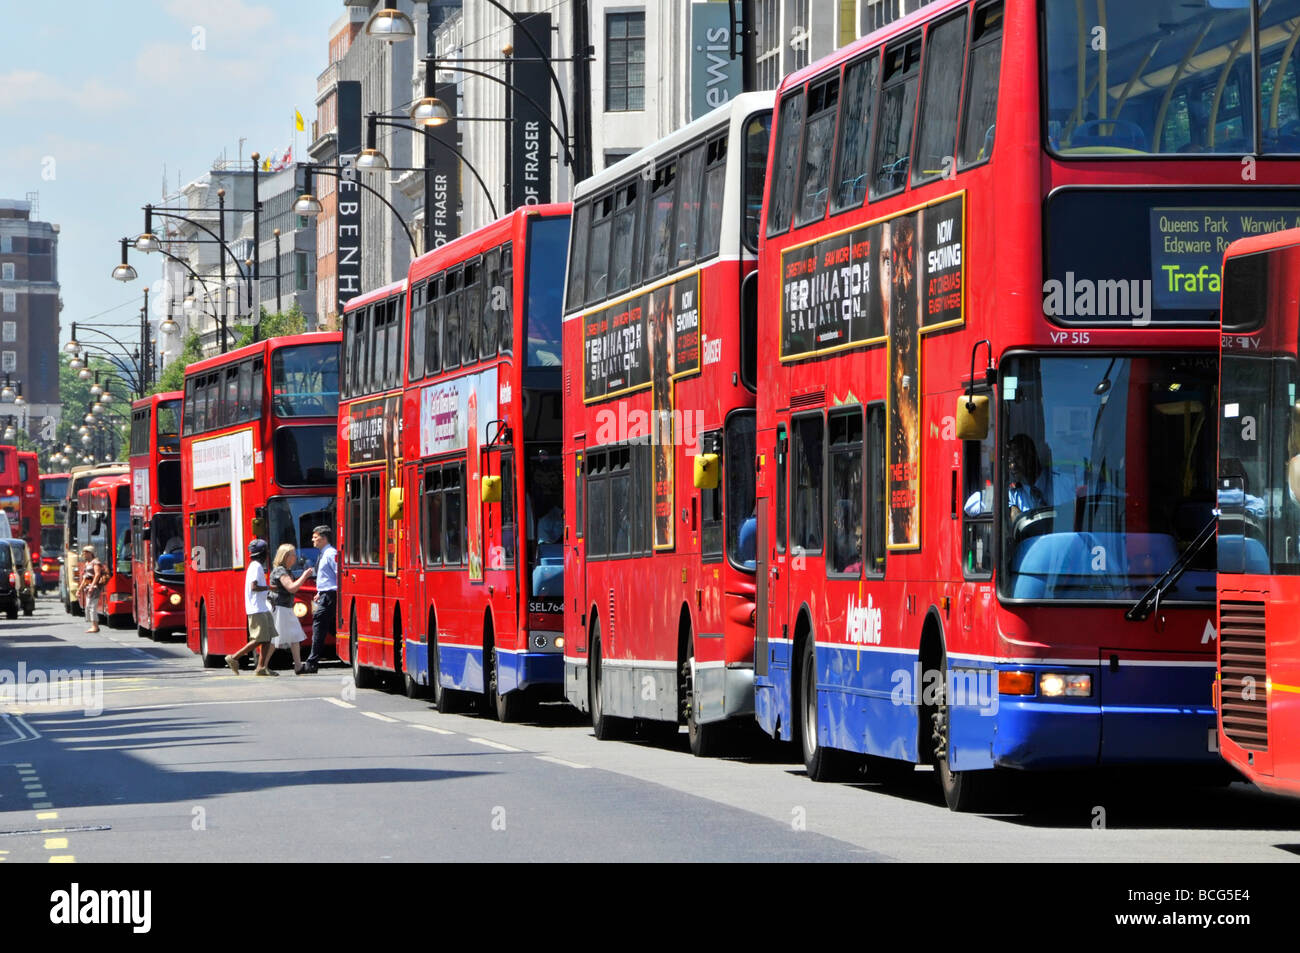 Image result for images of buses queuing